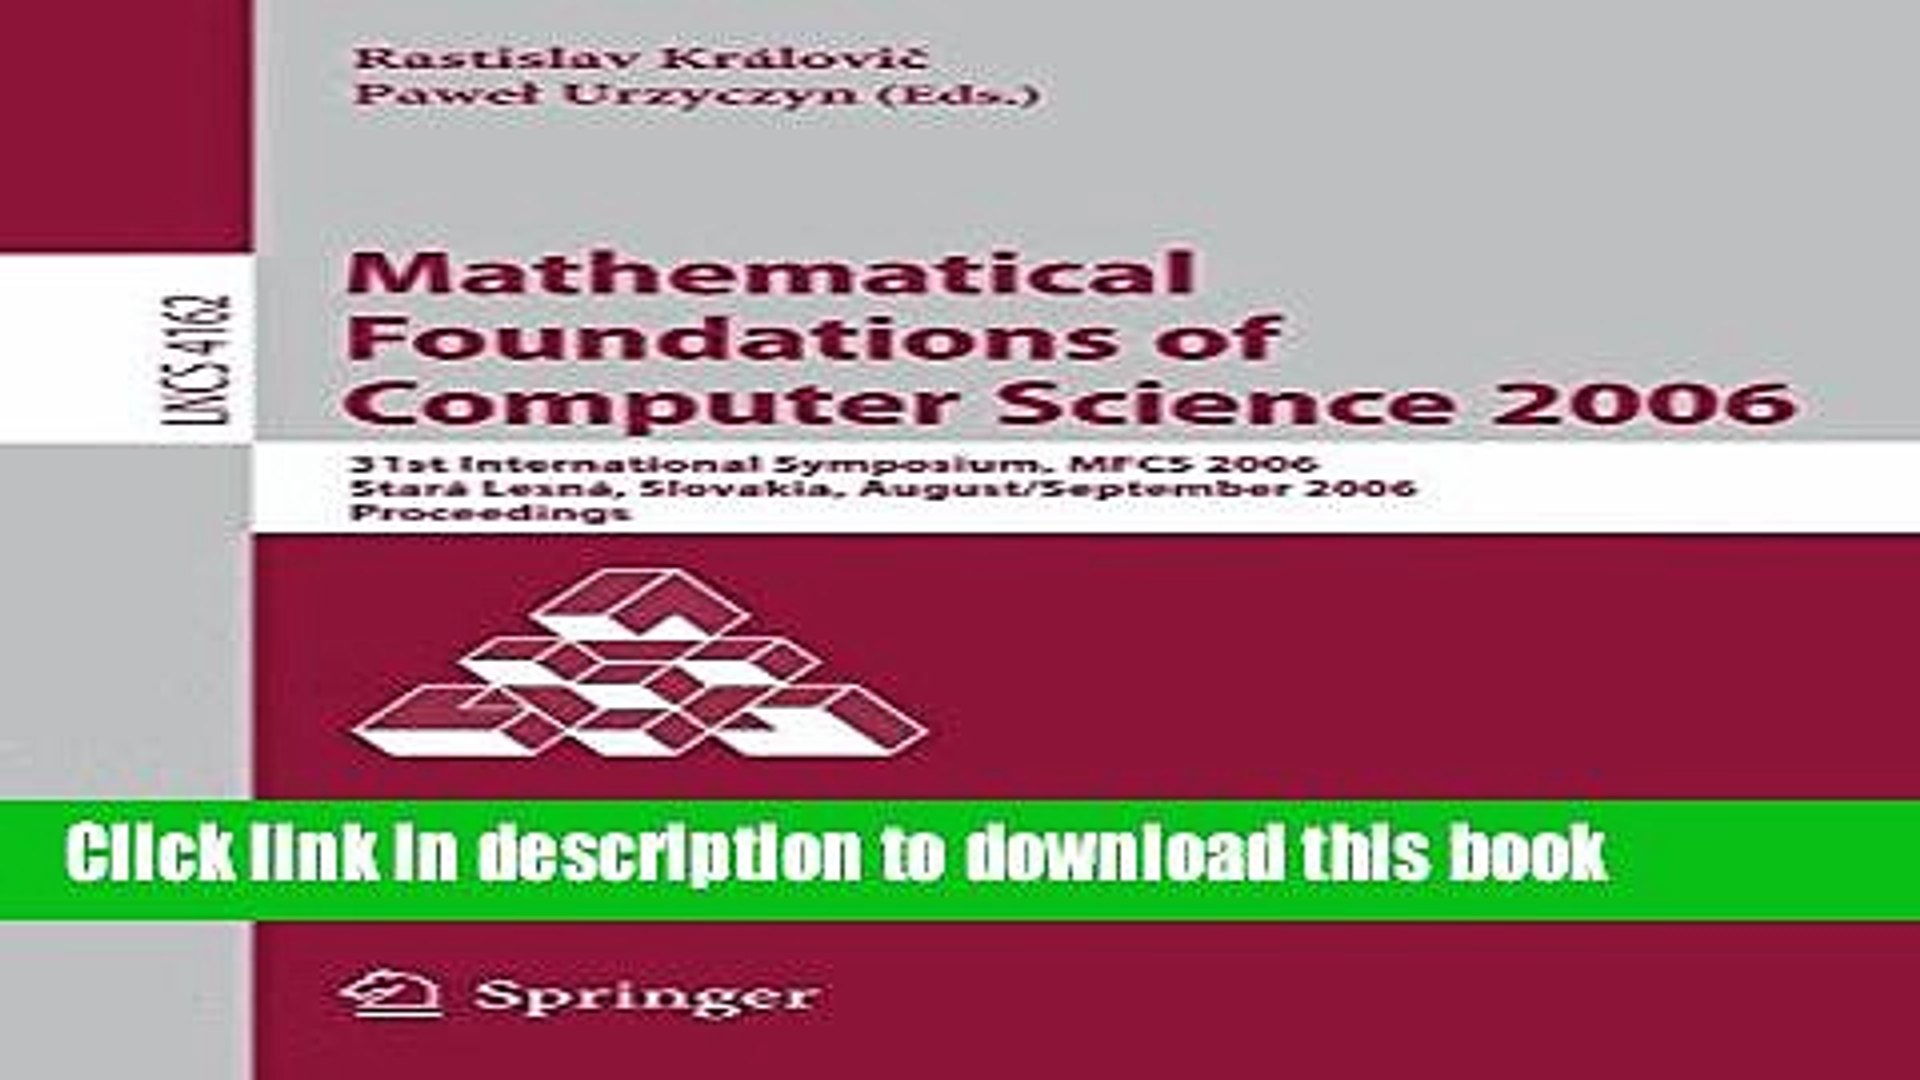 Read Mathematical Foundations of Computer Science 2006: 31st International Symposium, MFCS 2006,